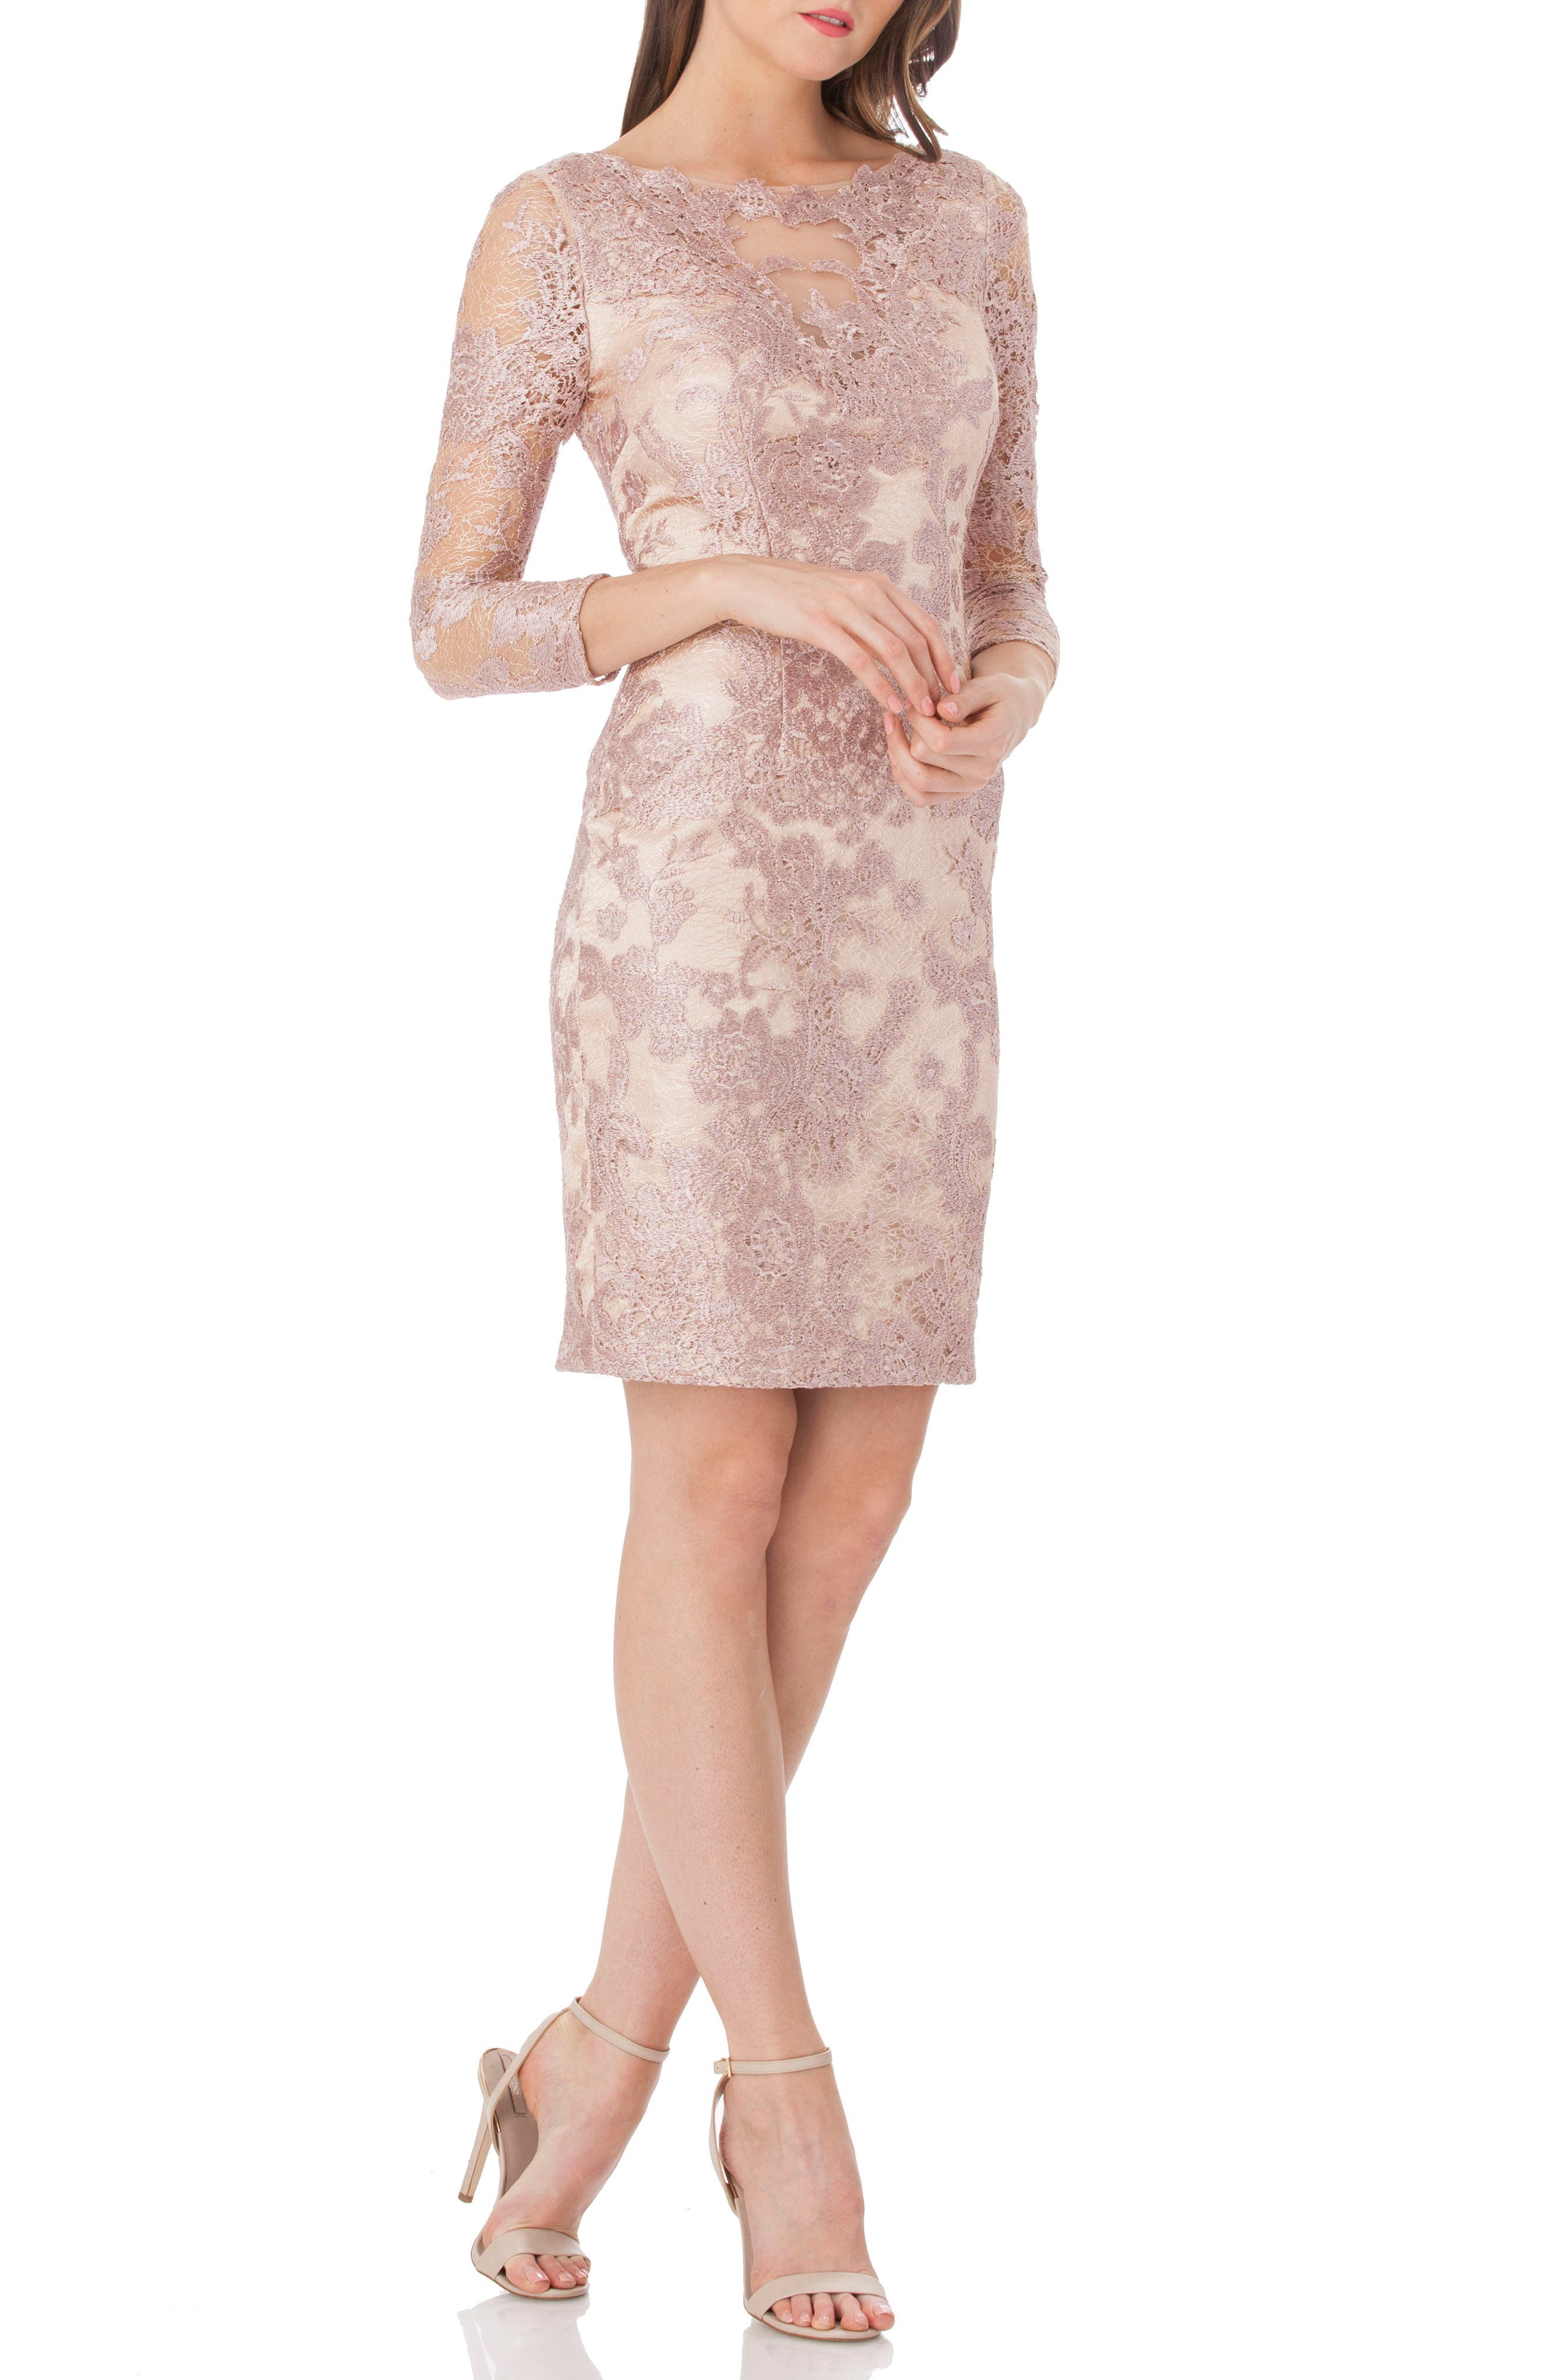 Embroidered Lace Cocktail Dress,                             Main thumbnail 1, color,                             LILAC/ PINK